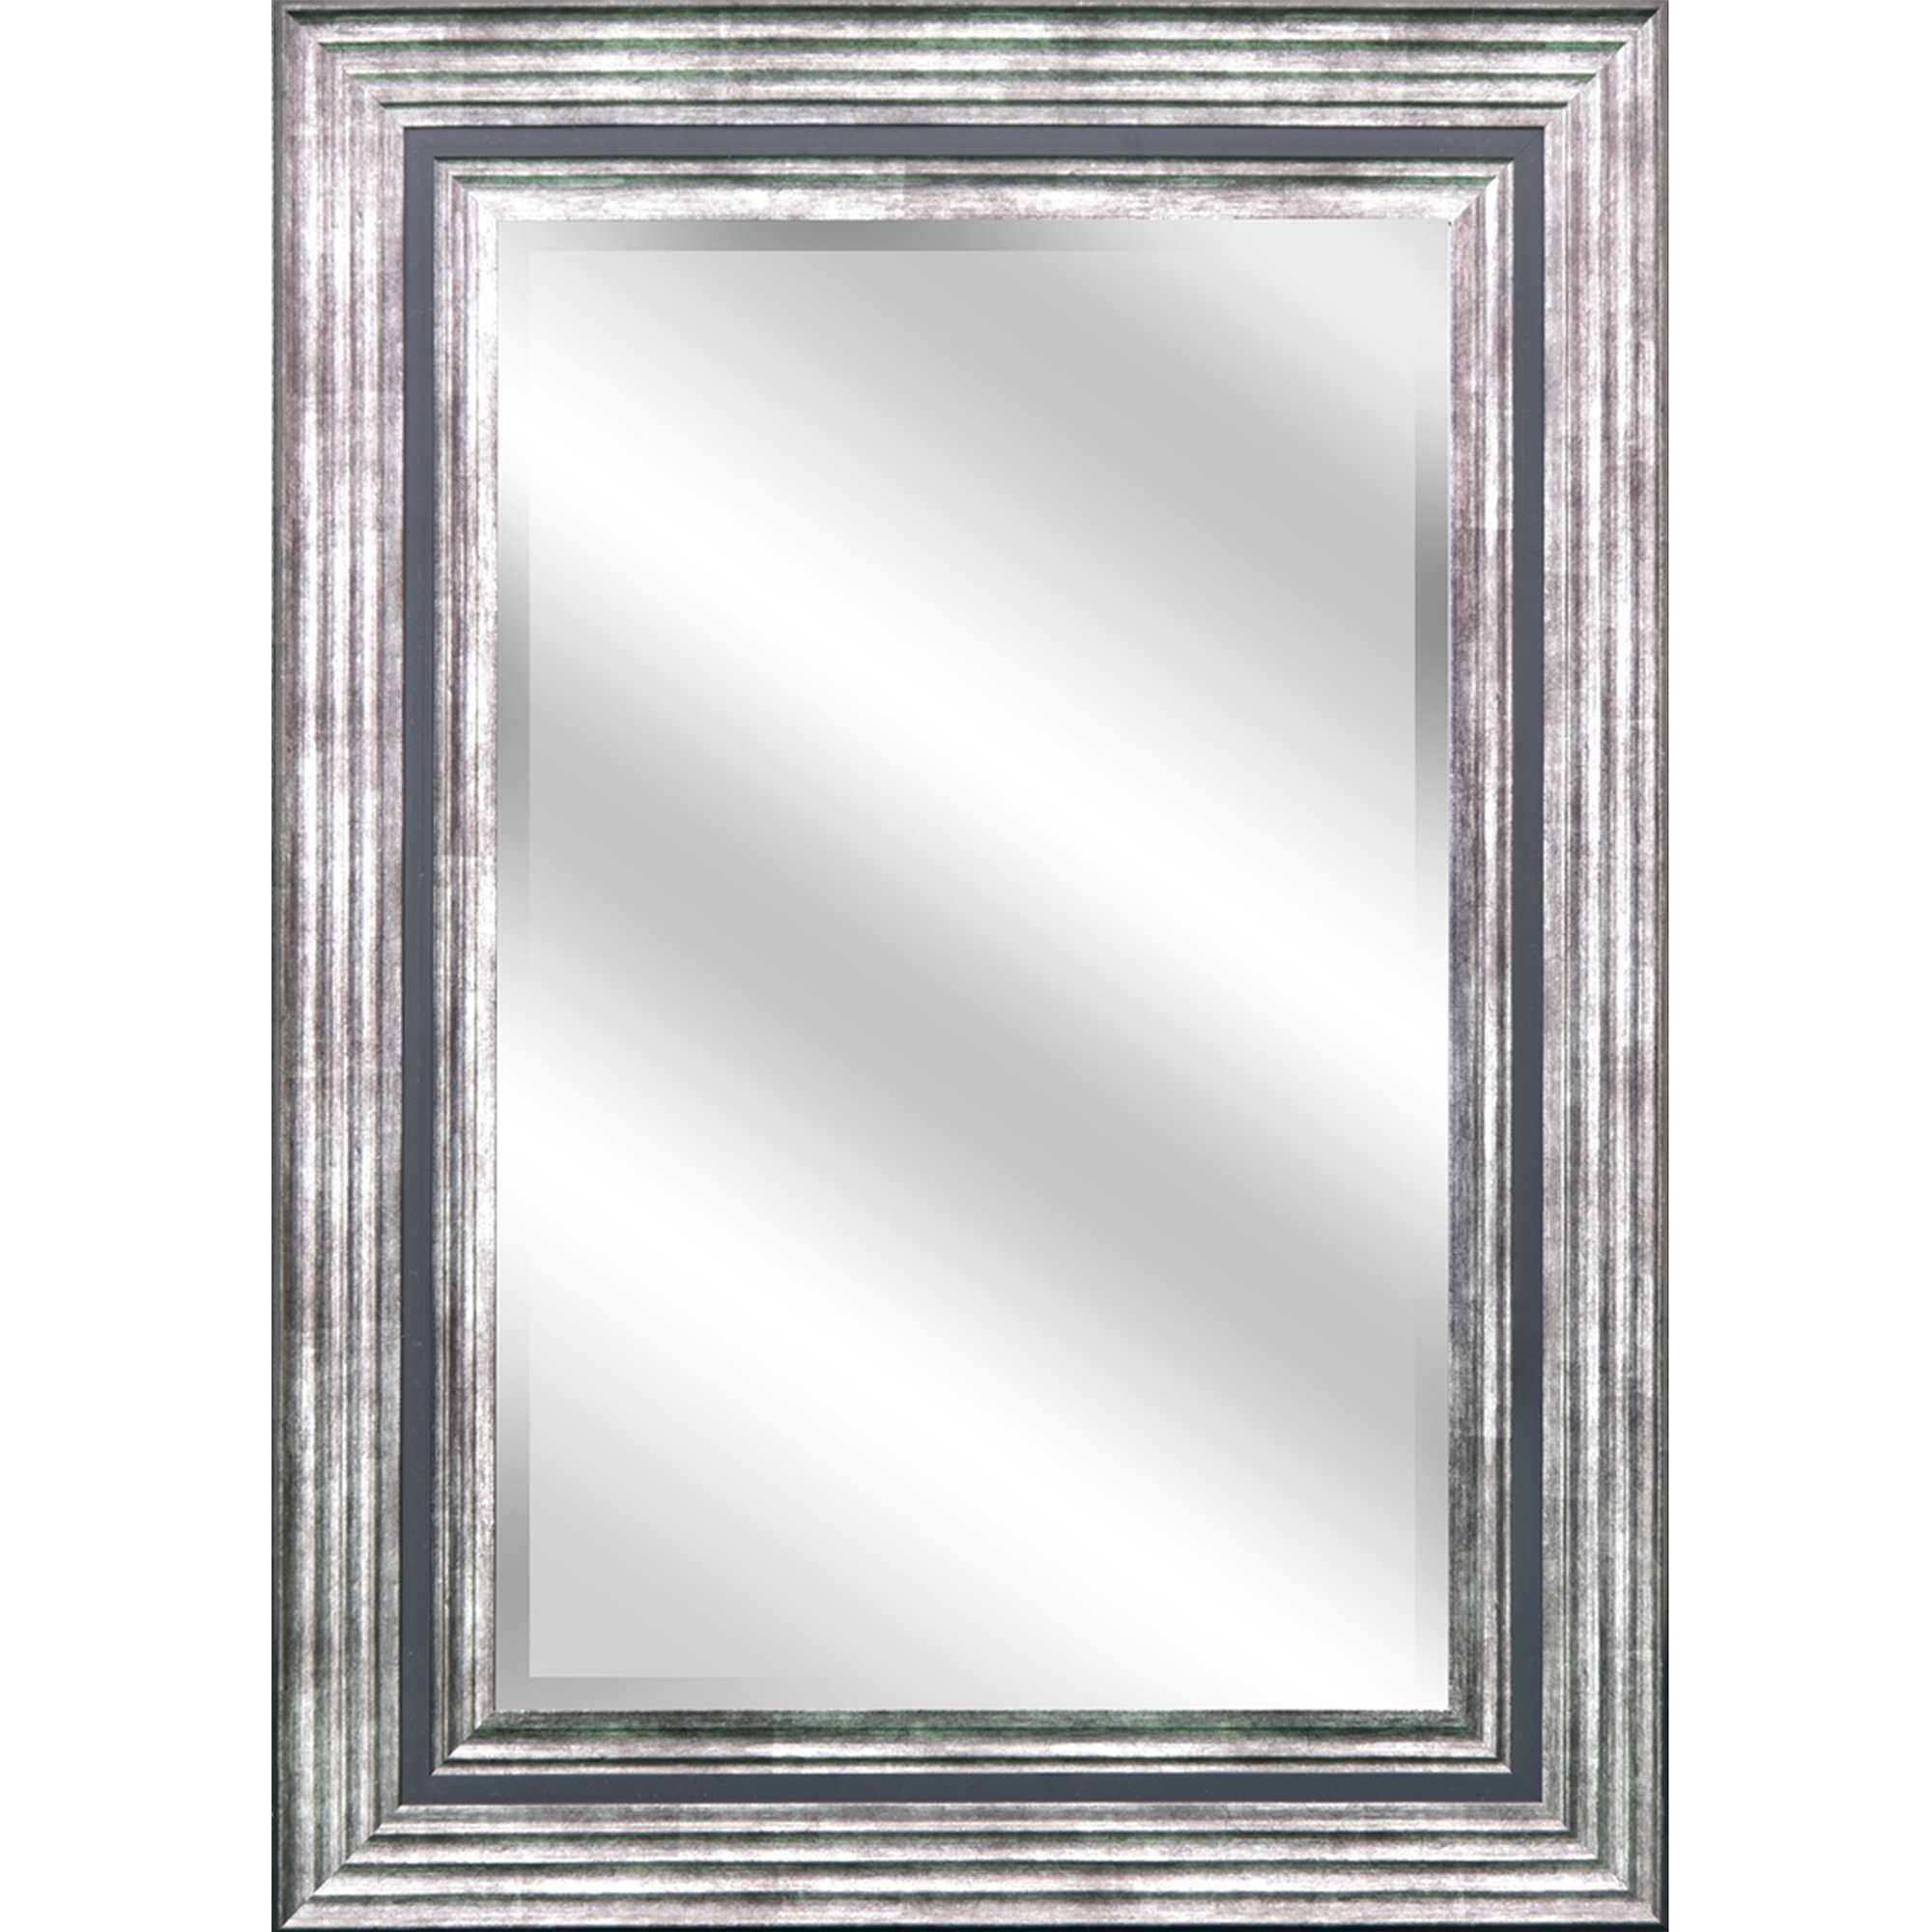 Y Decor Reflection Bevel Wall Mirror Reviews Wayfair In Double Bevelled Mirror (Image 14 of 15)